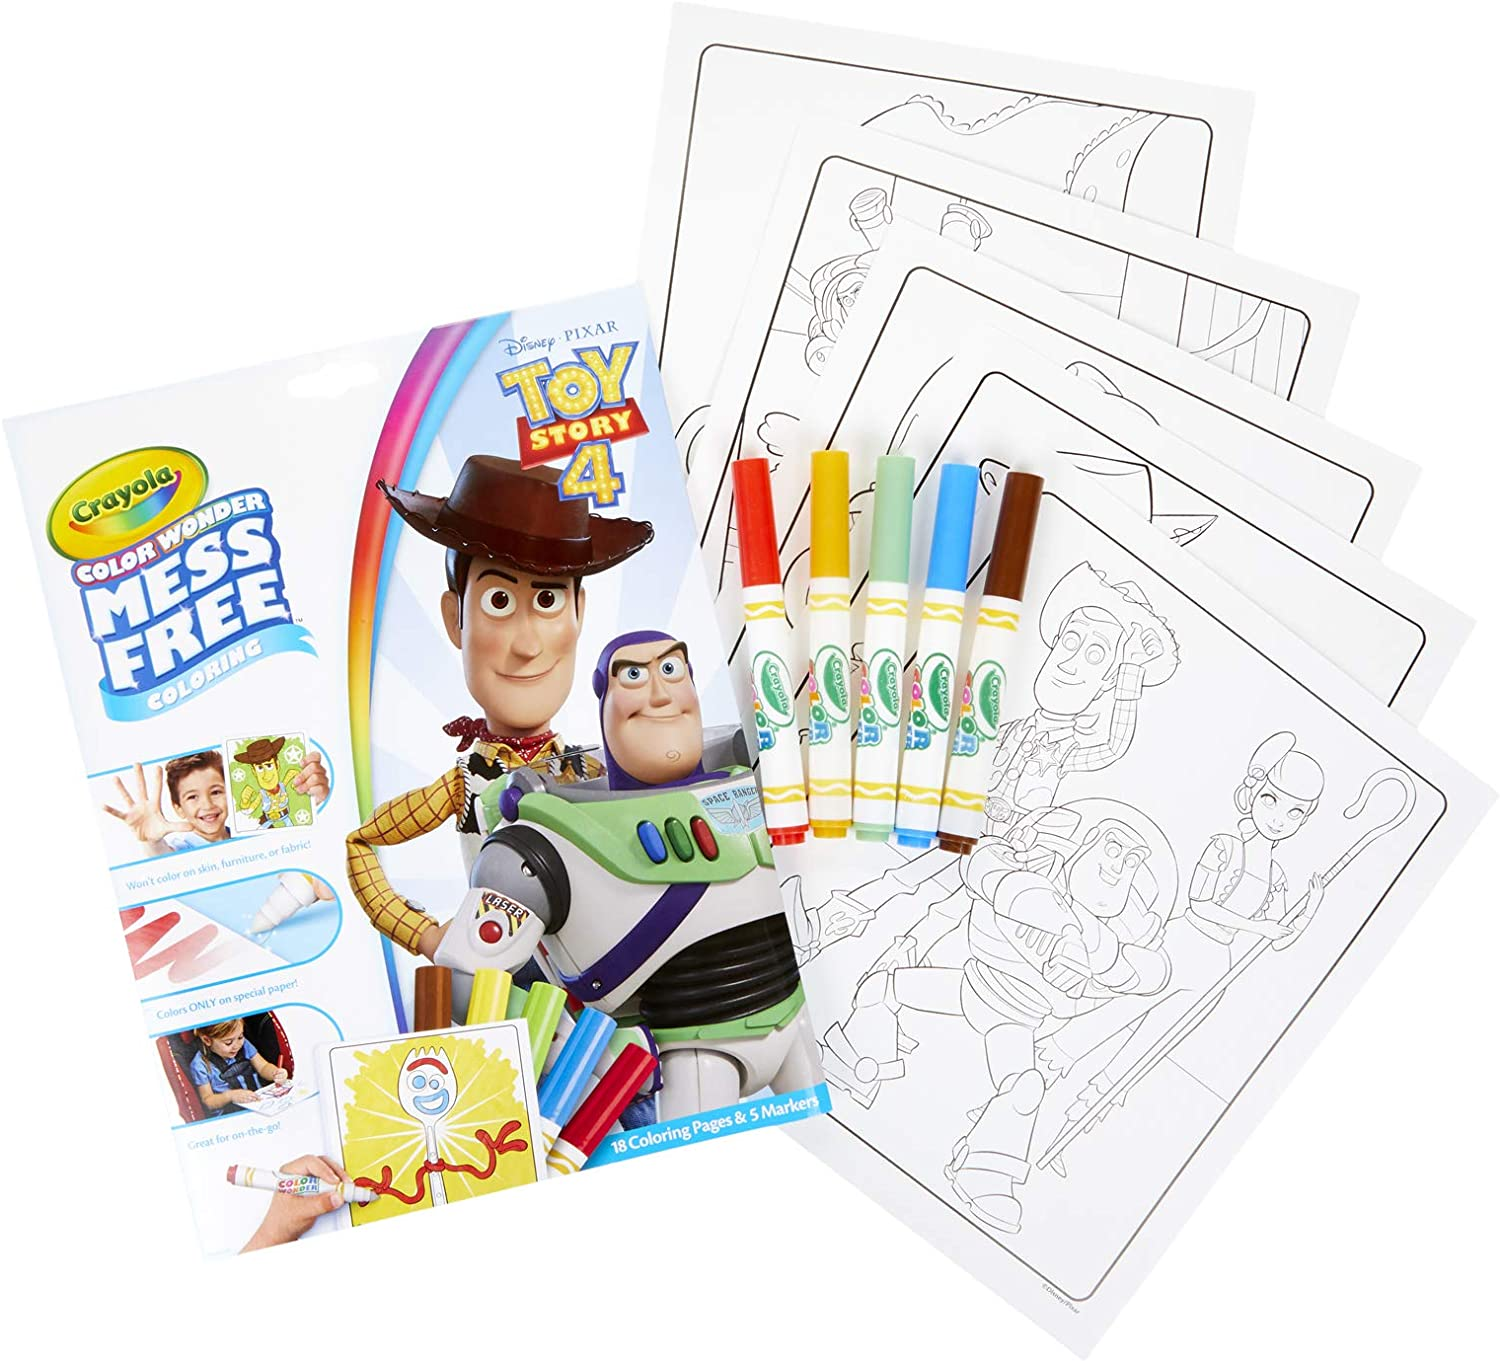 Free Printable Toy Story Coloring Pages For Kids | 1361x1500